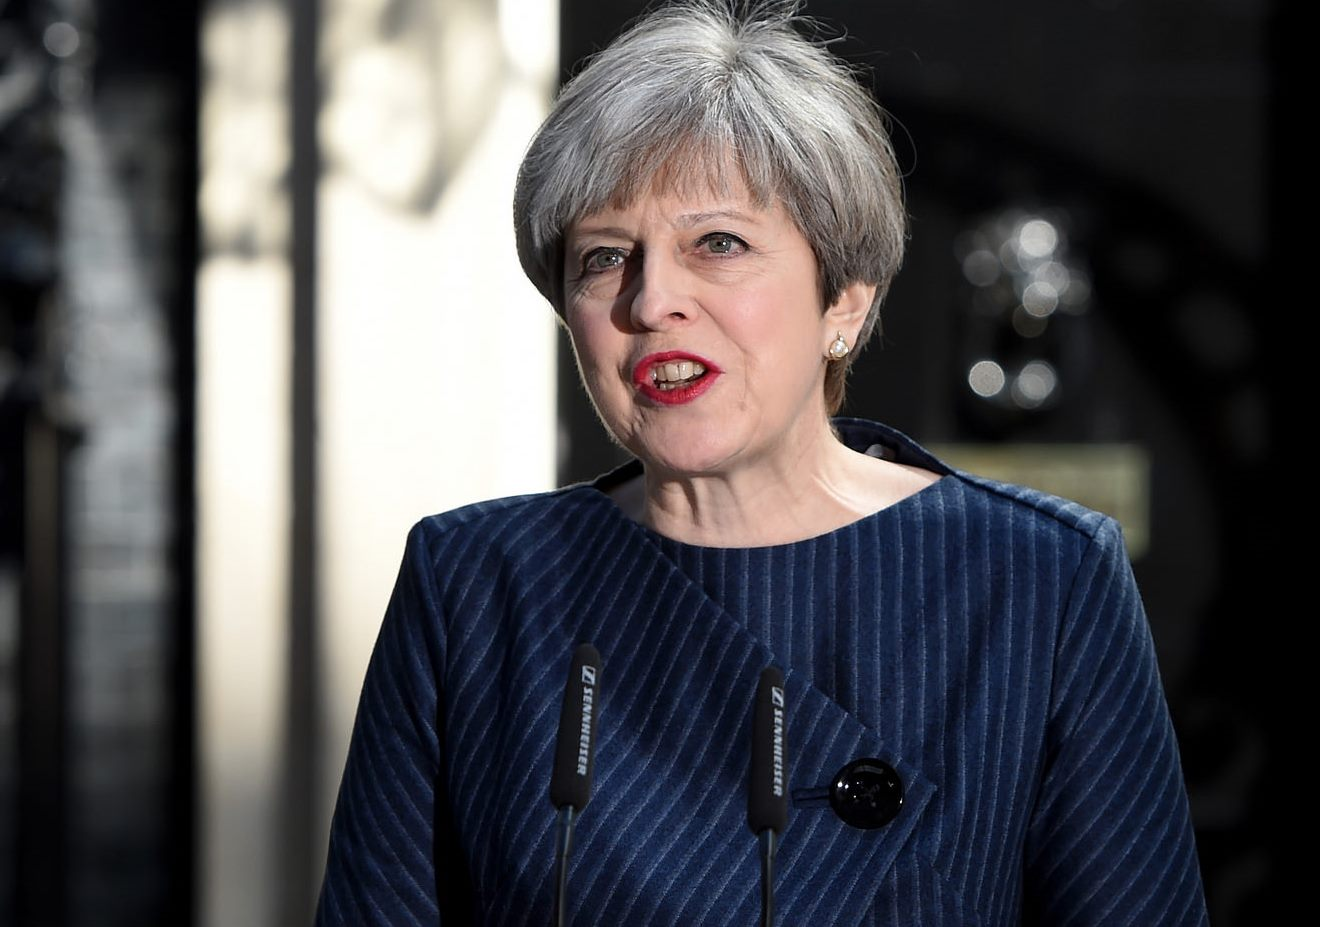 UK prime minister pledges to abolish SFO in election manifesto